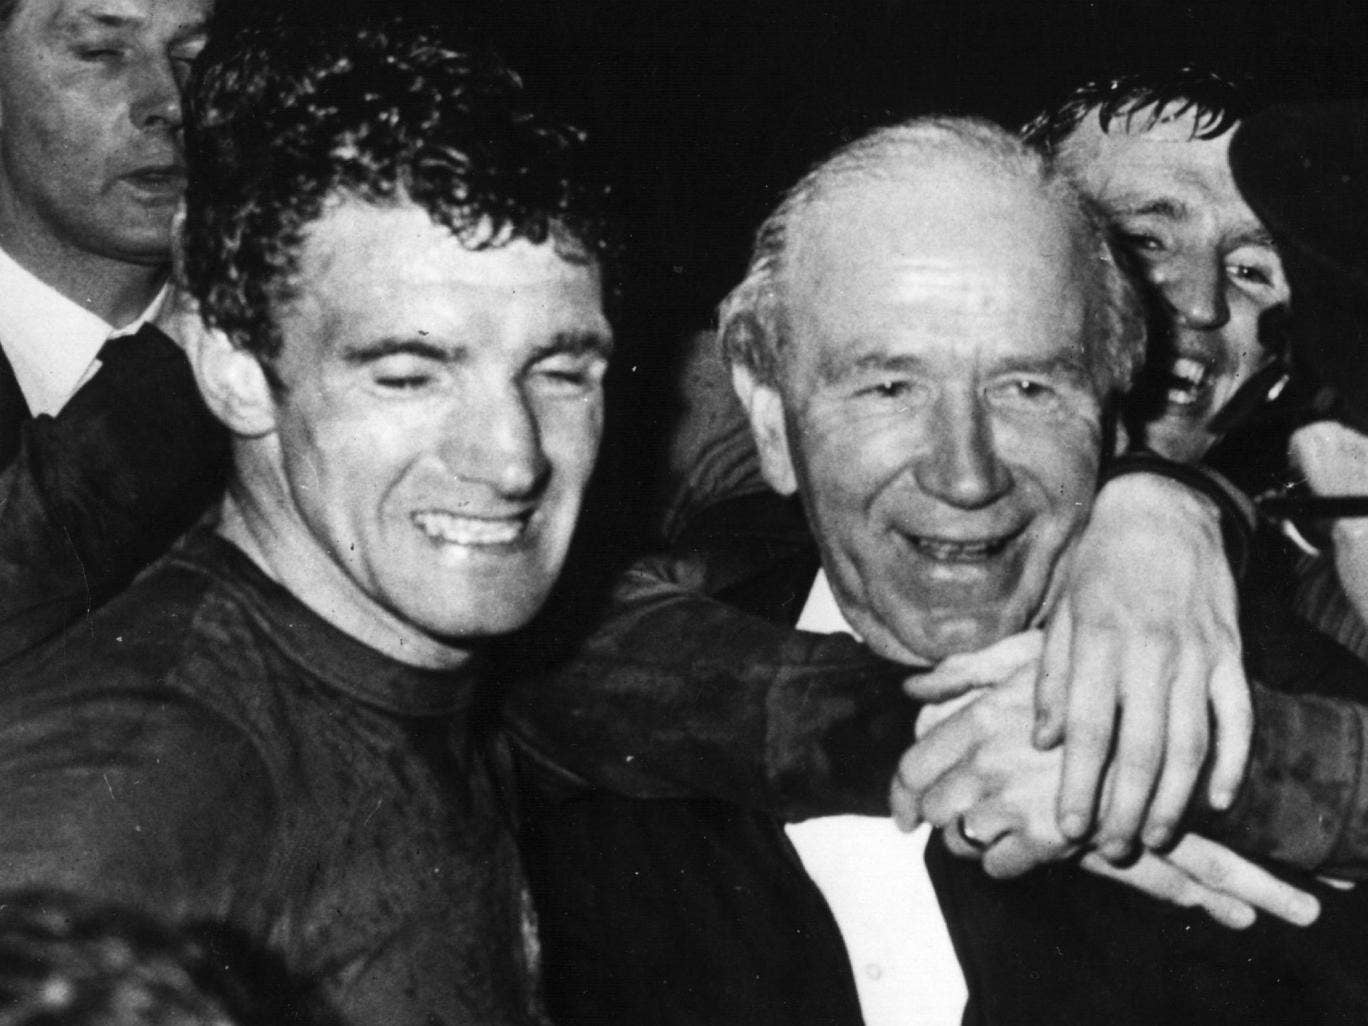 Manchester United manager, Matt Busby, with Bill Foulkes (left) celebrating their 4-1 victory over Benfica in the European Cup Final at Wembley